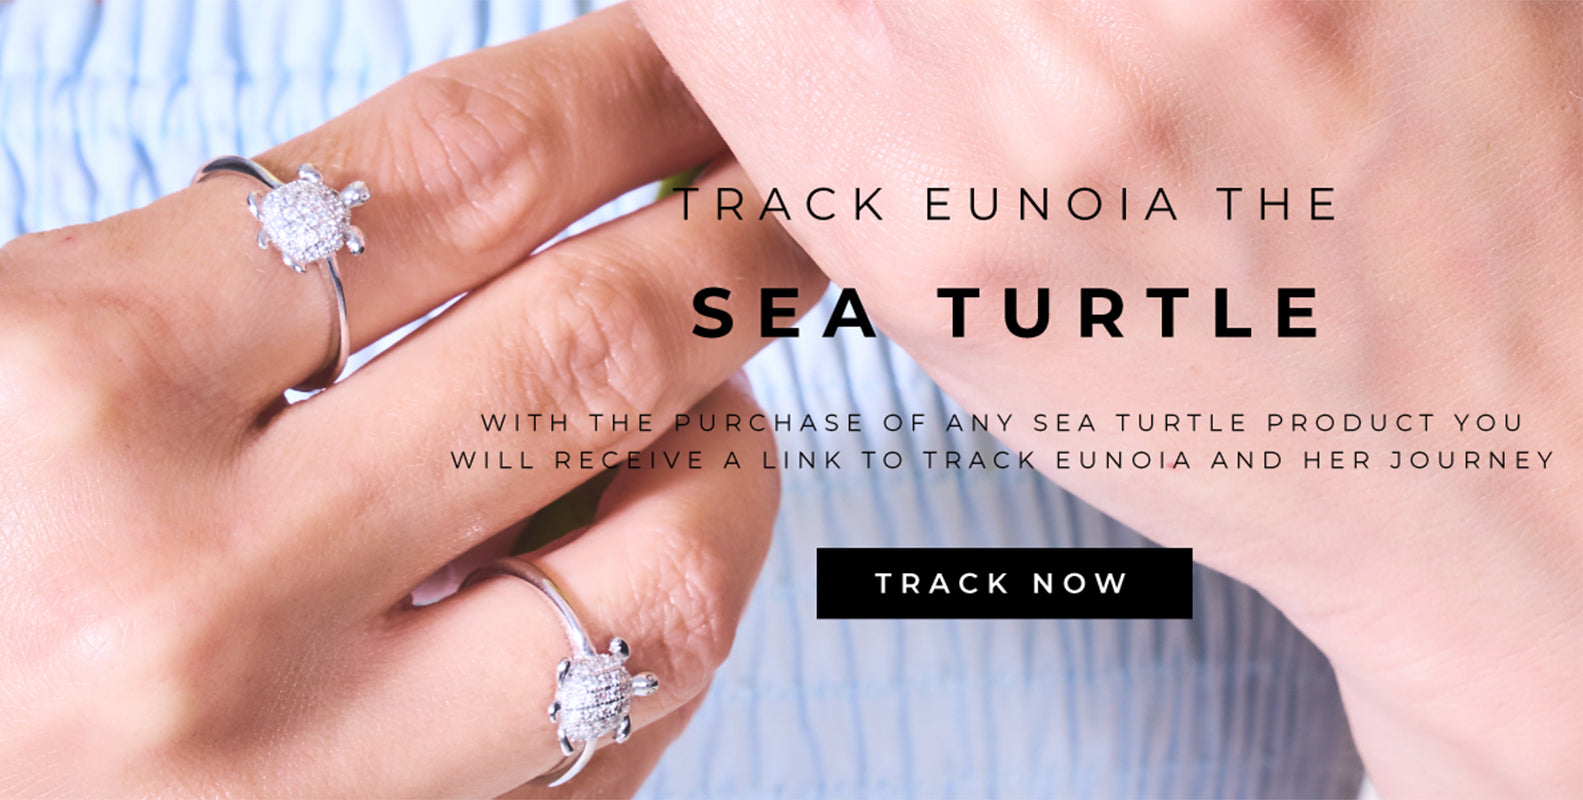 Track our Sea Turtle Eunoia with our Handmade Sea Turtle Jewelry Collection